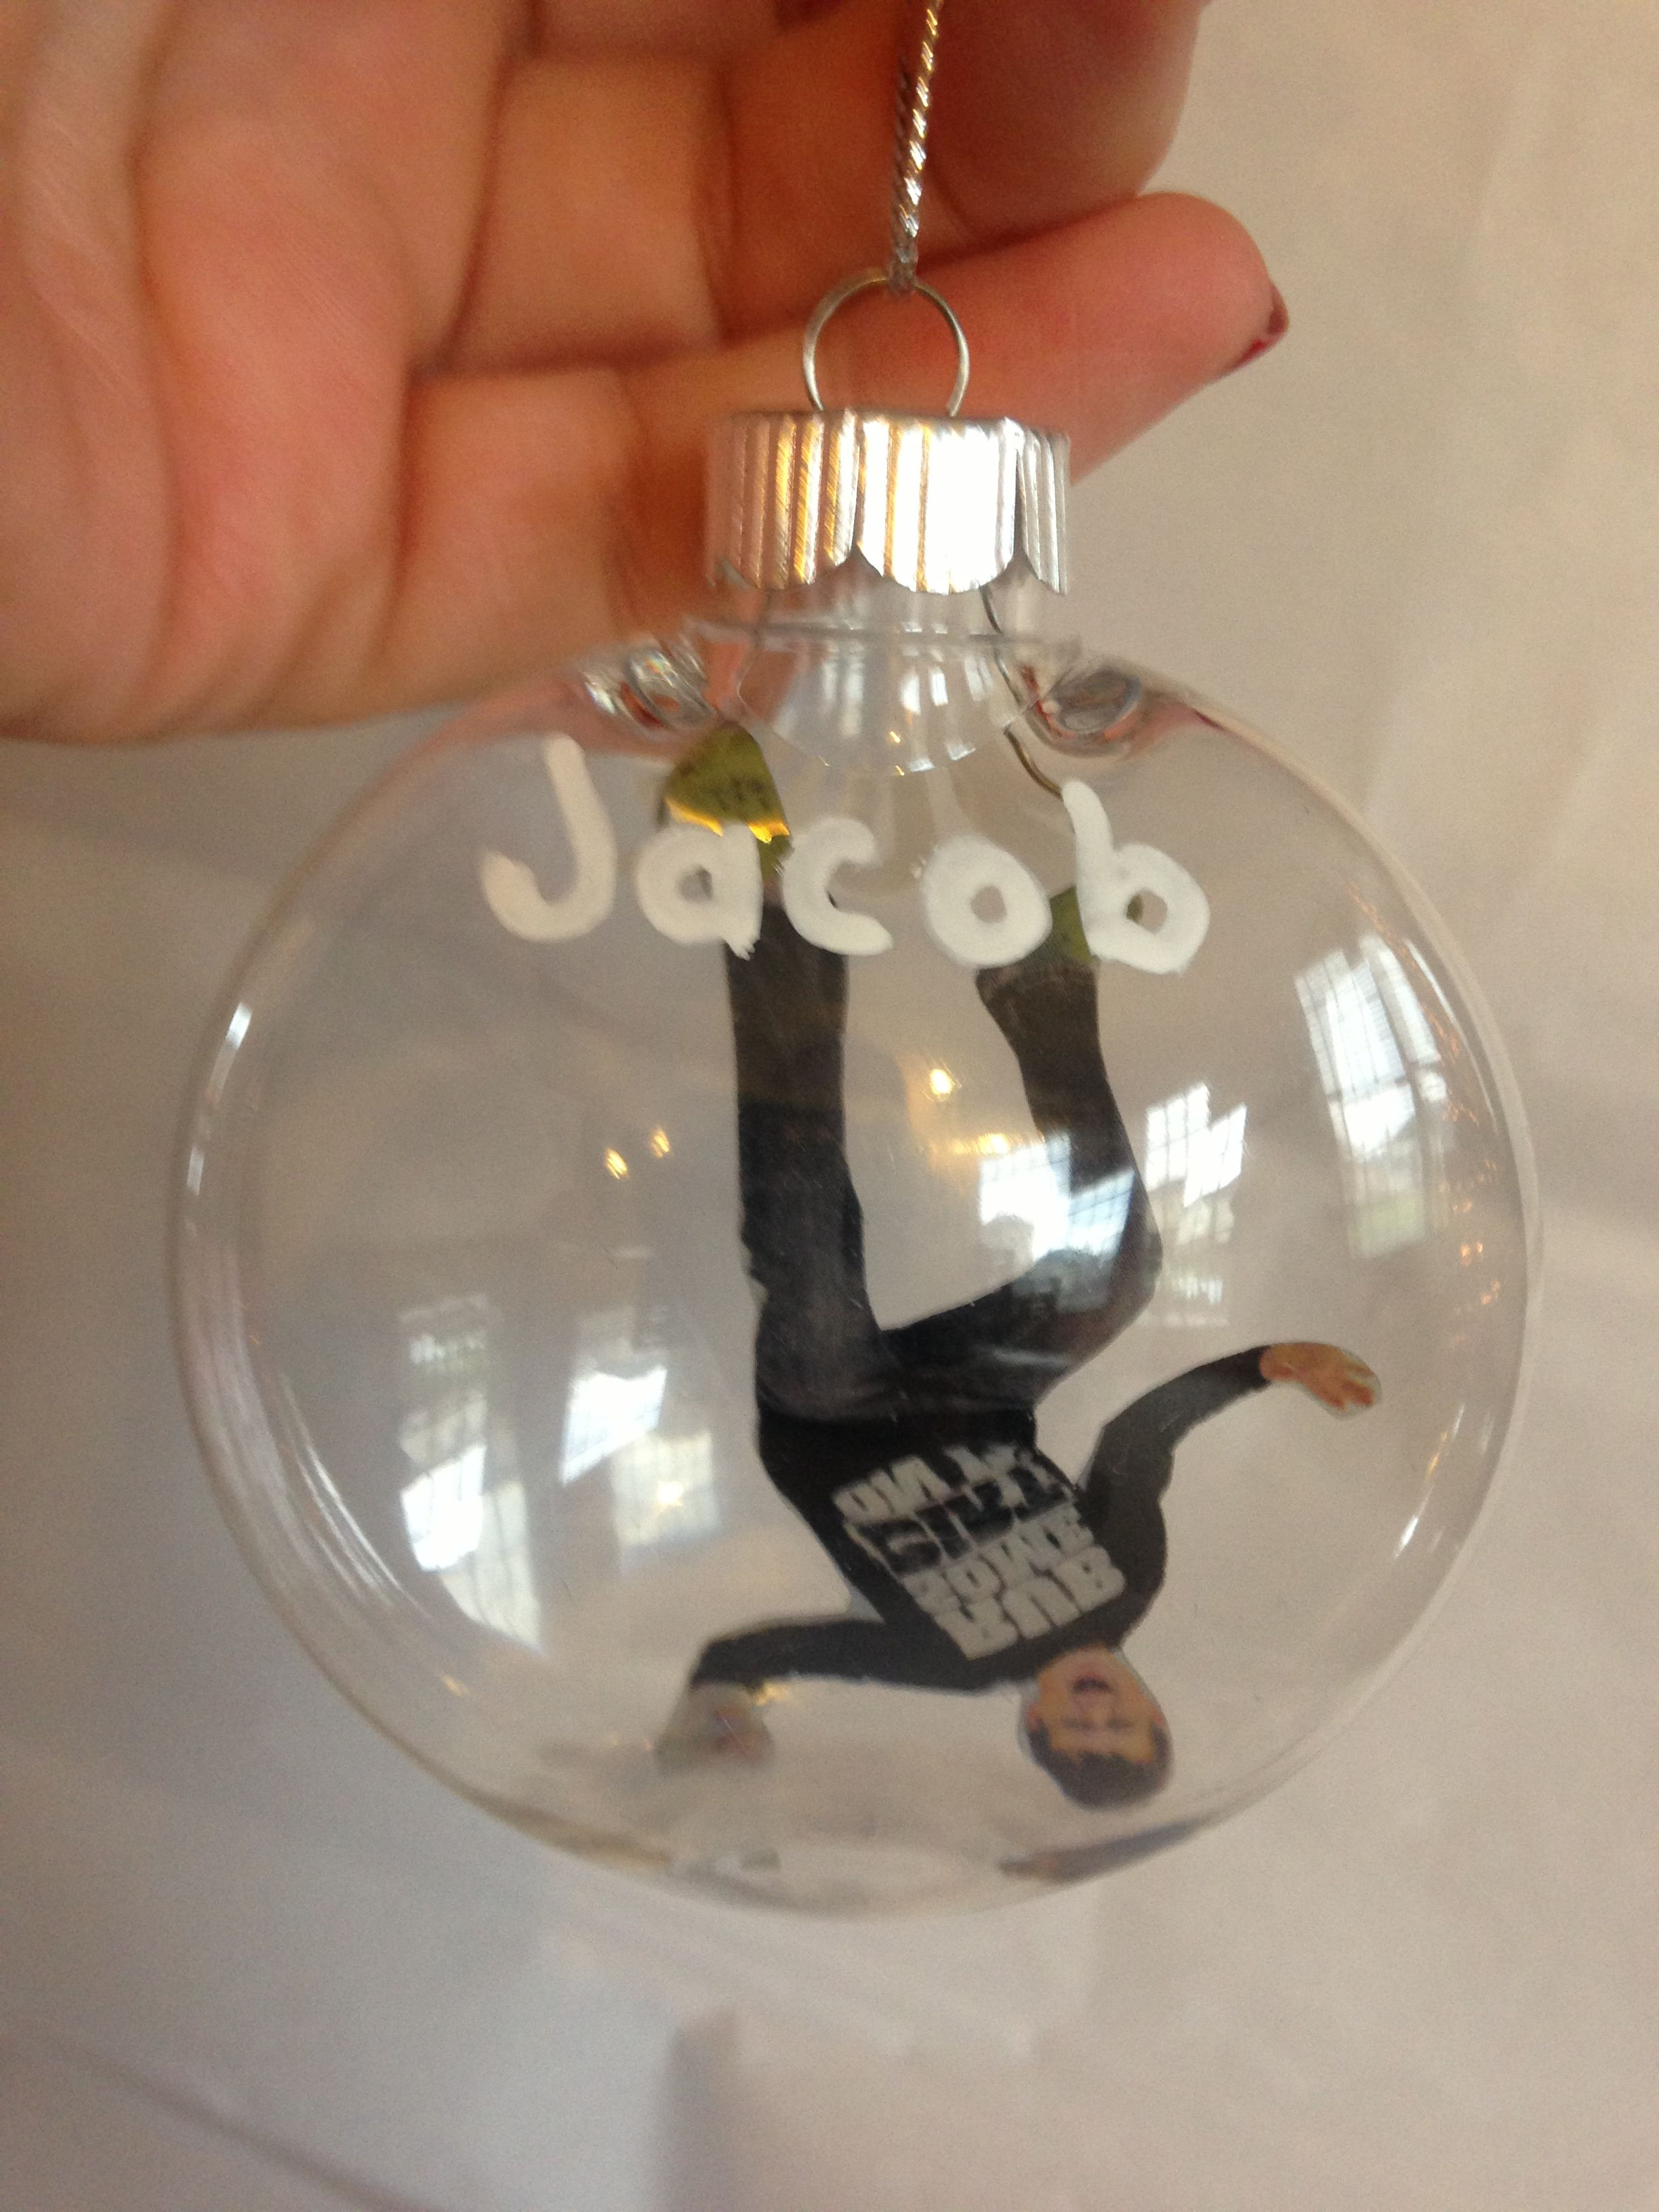 Christmas Craft Ideas For 5th Graders Part - 33: 5th Grade Holiday Ornament